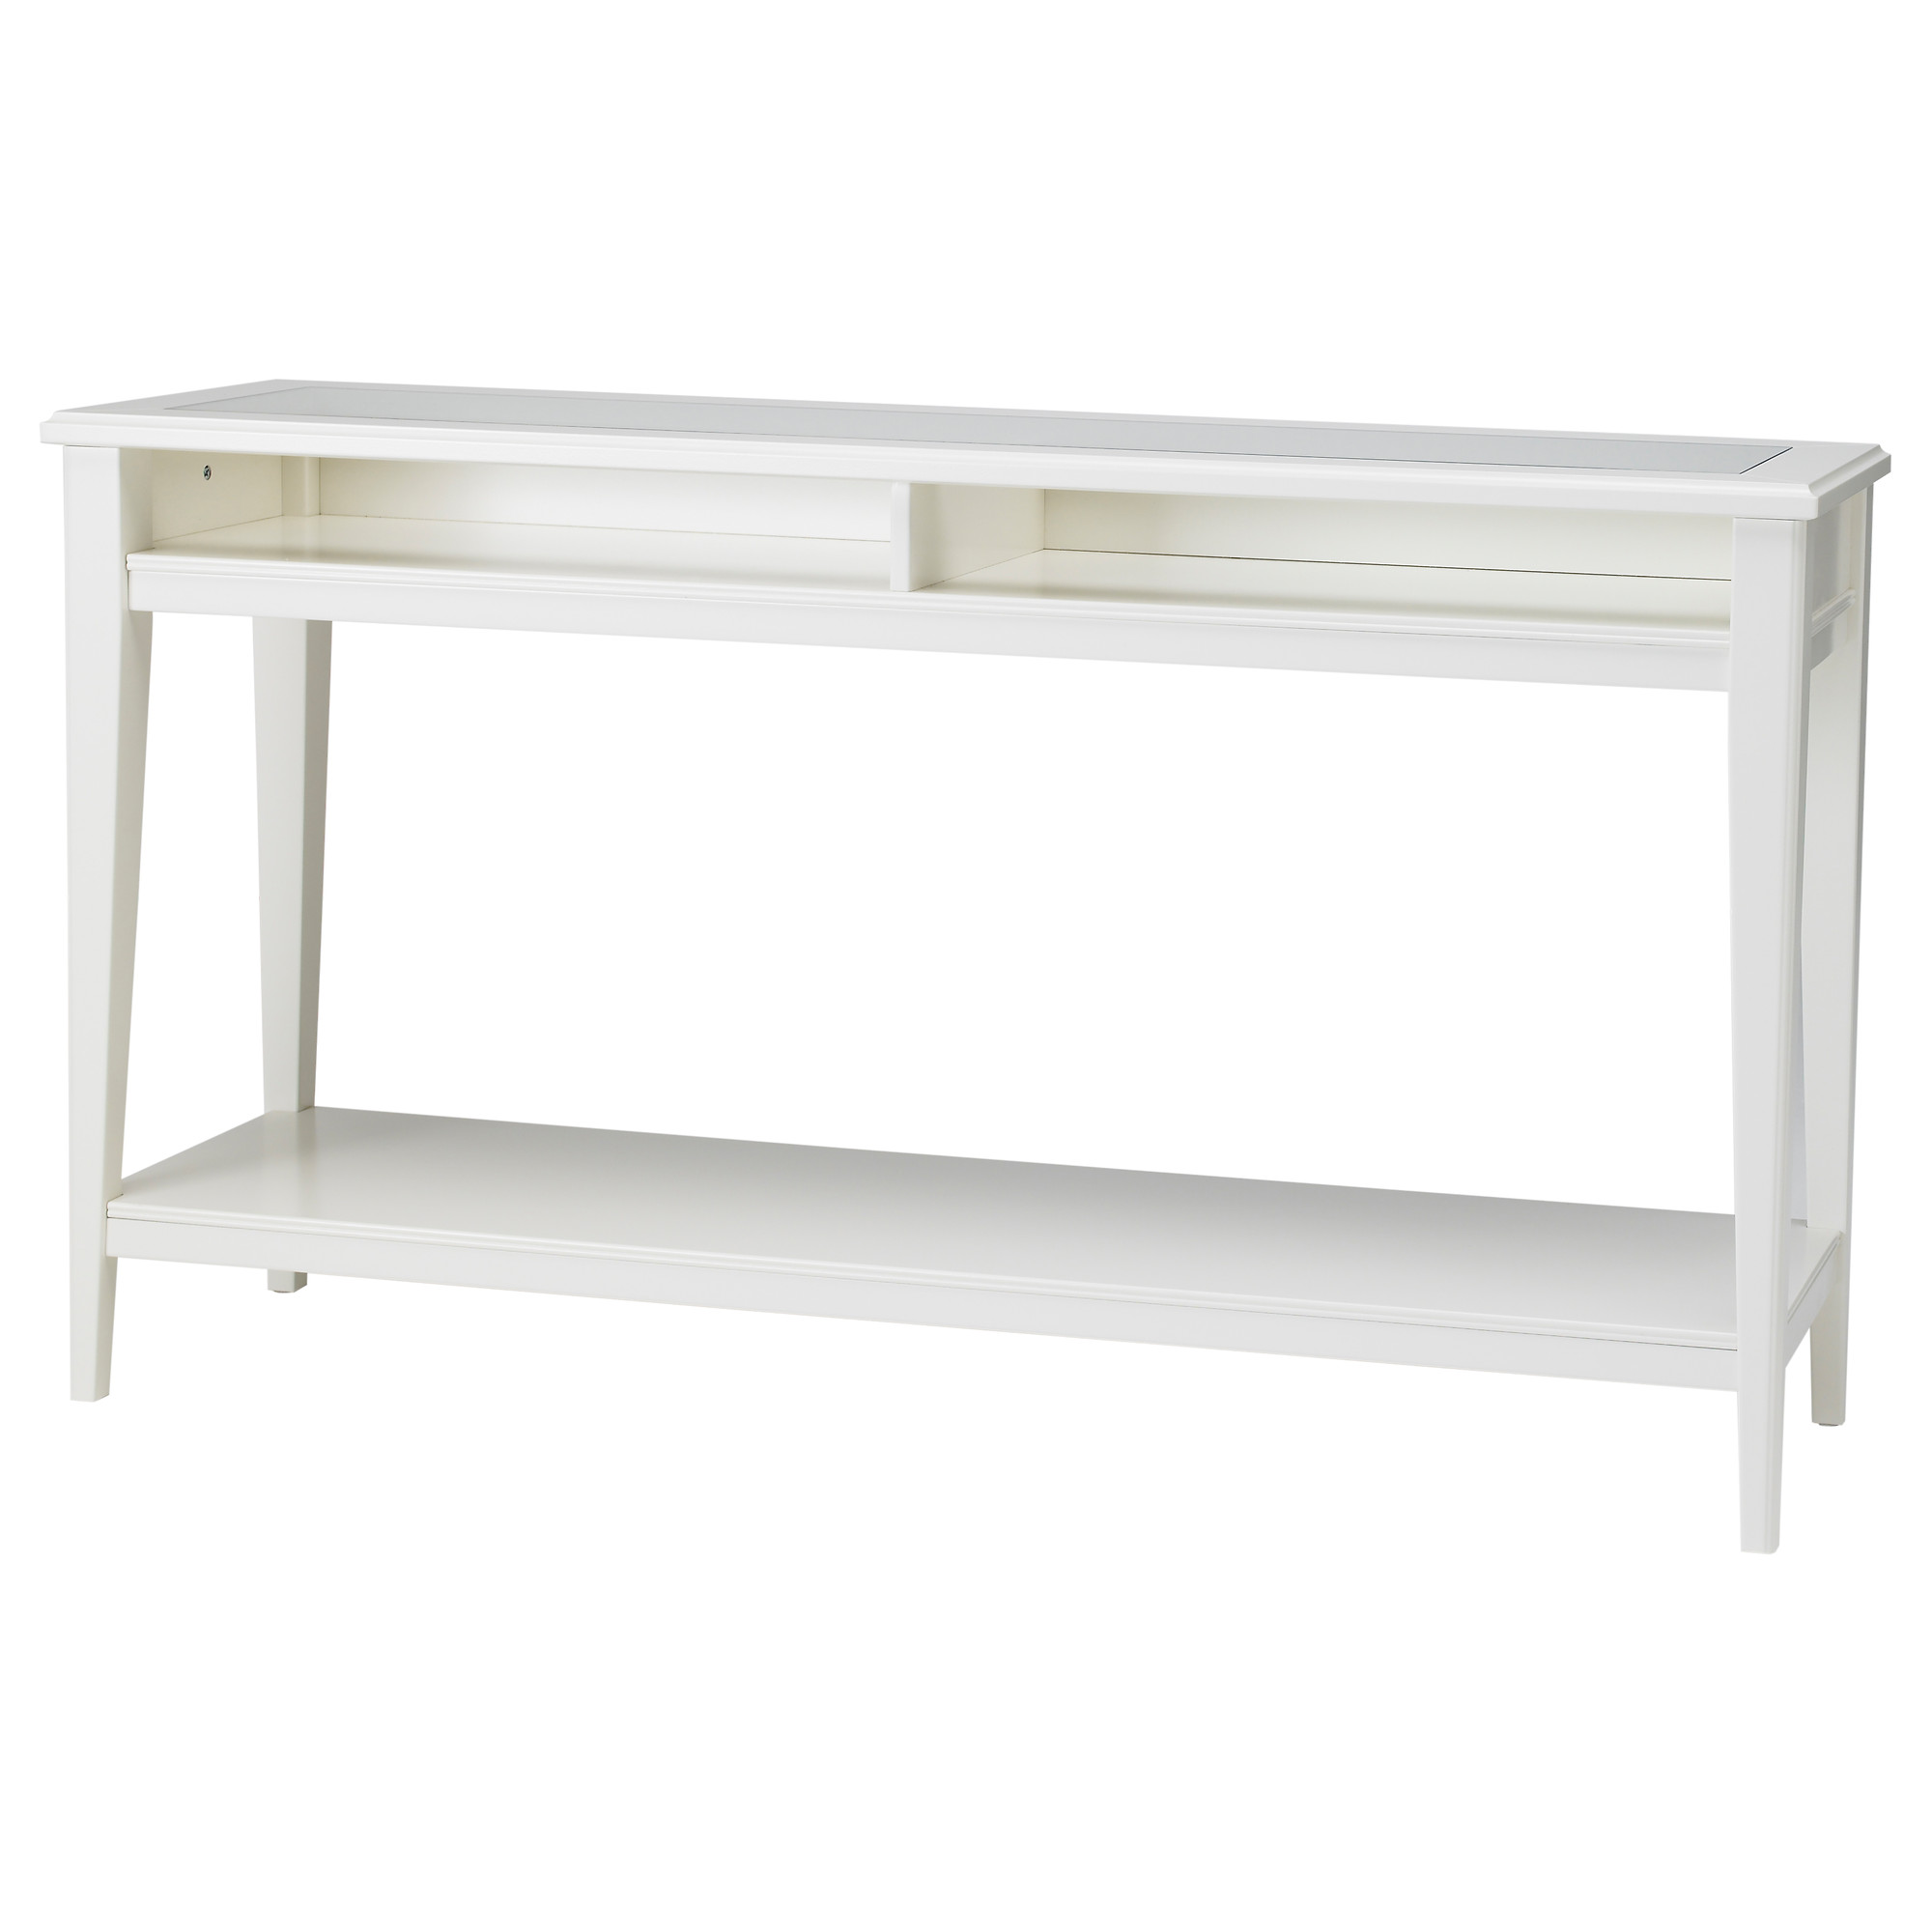 Tabourets Vima Dazzling Console Tables Ikea With Storage Beneath Painted